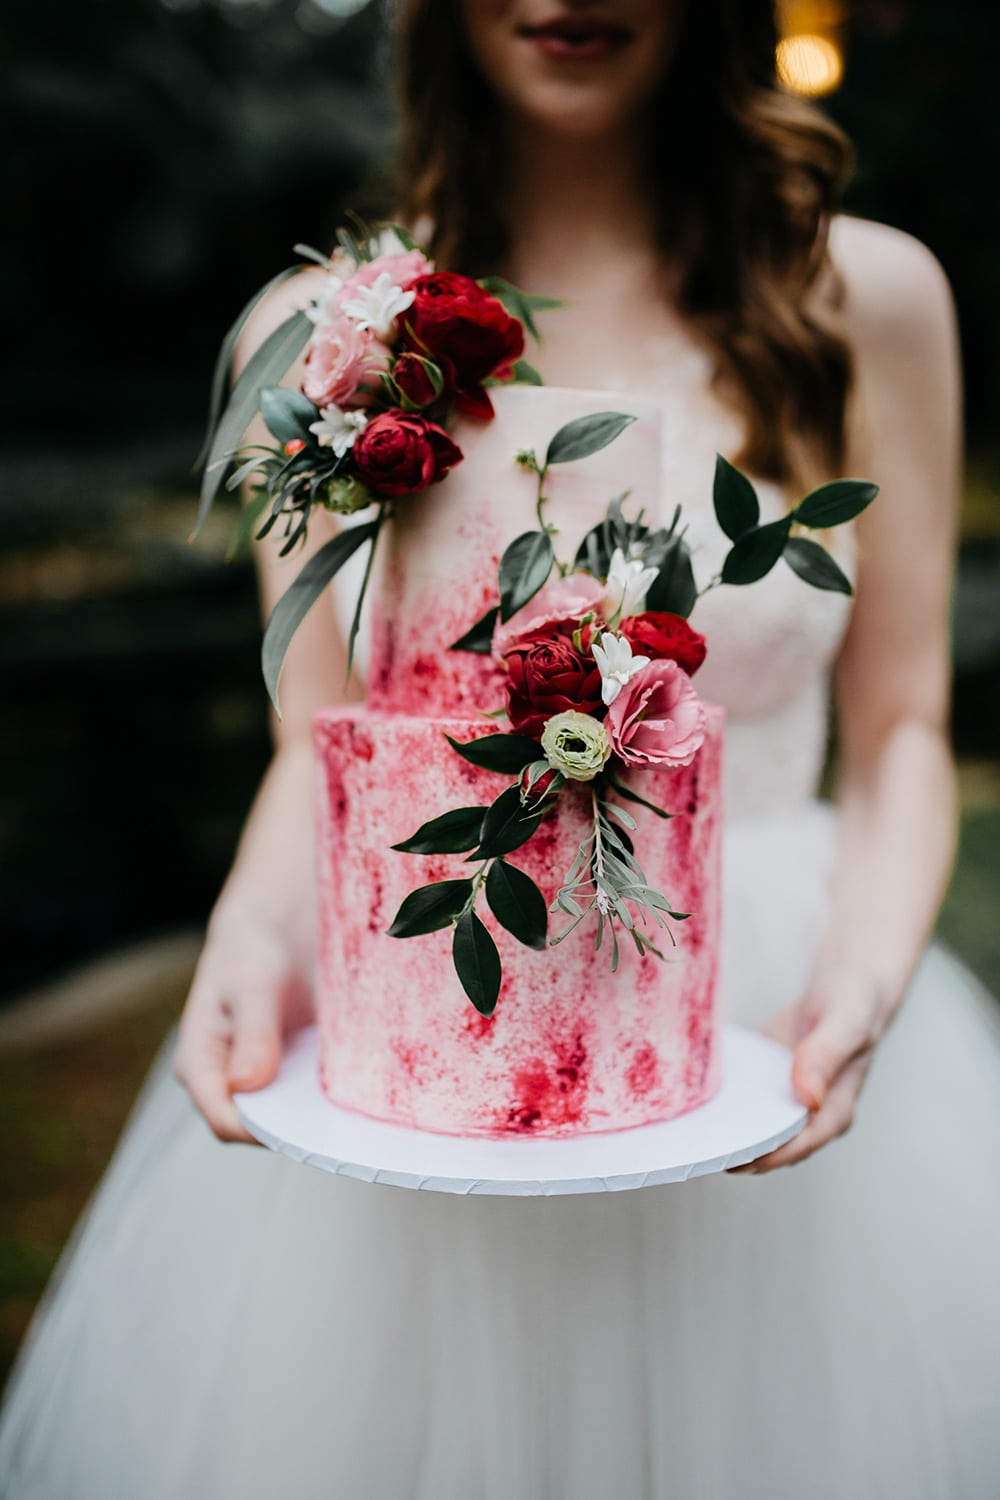 Intimate Woodland Elopement Inspiration | Photography: Madison Mortimer